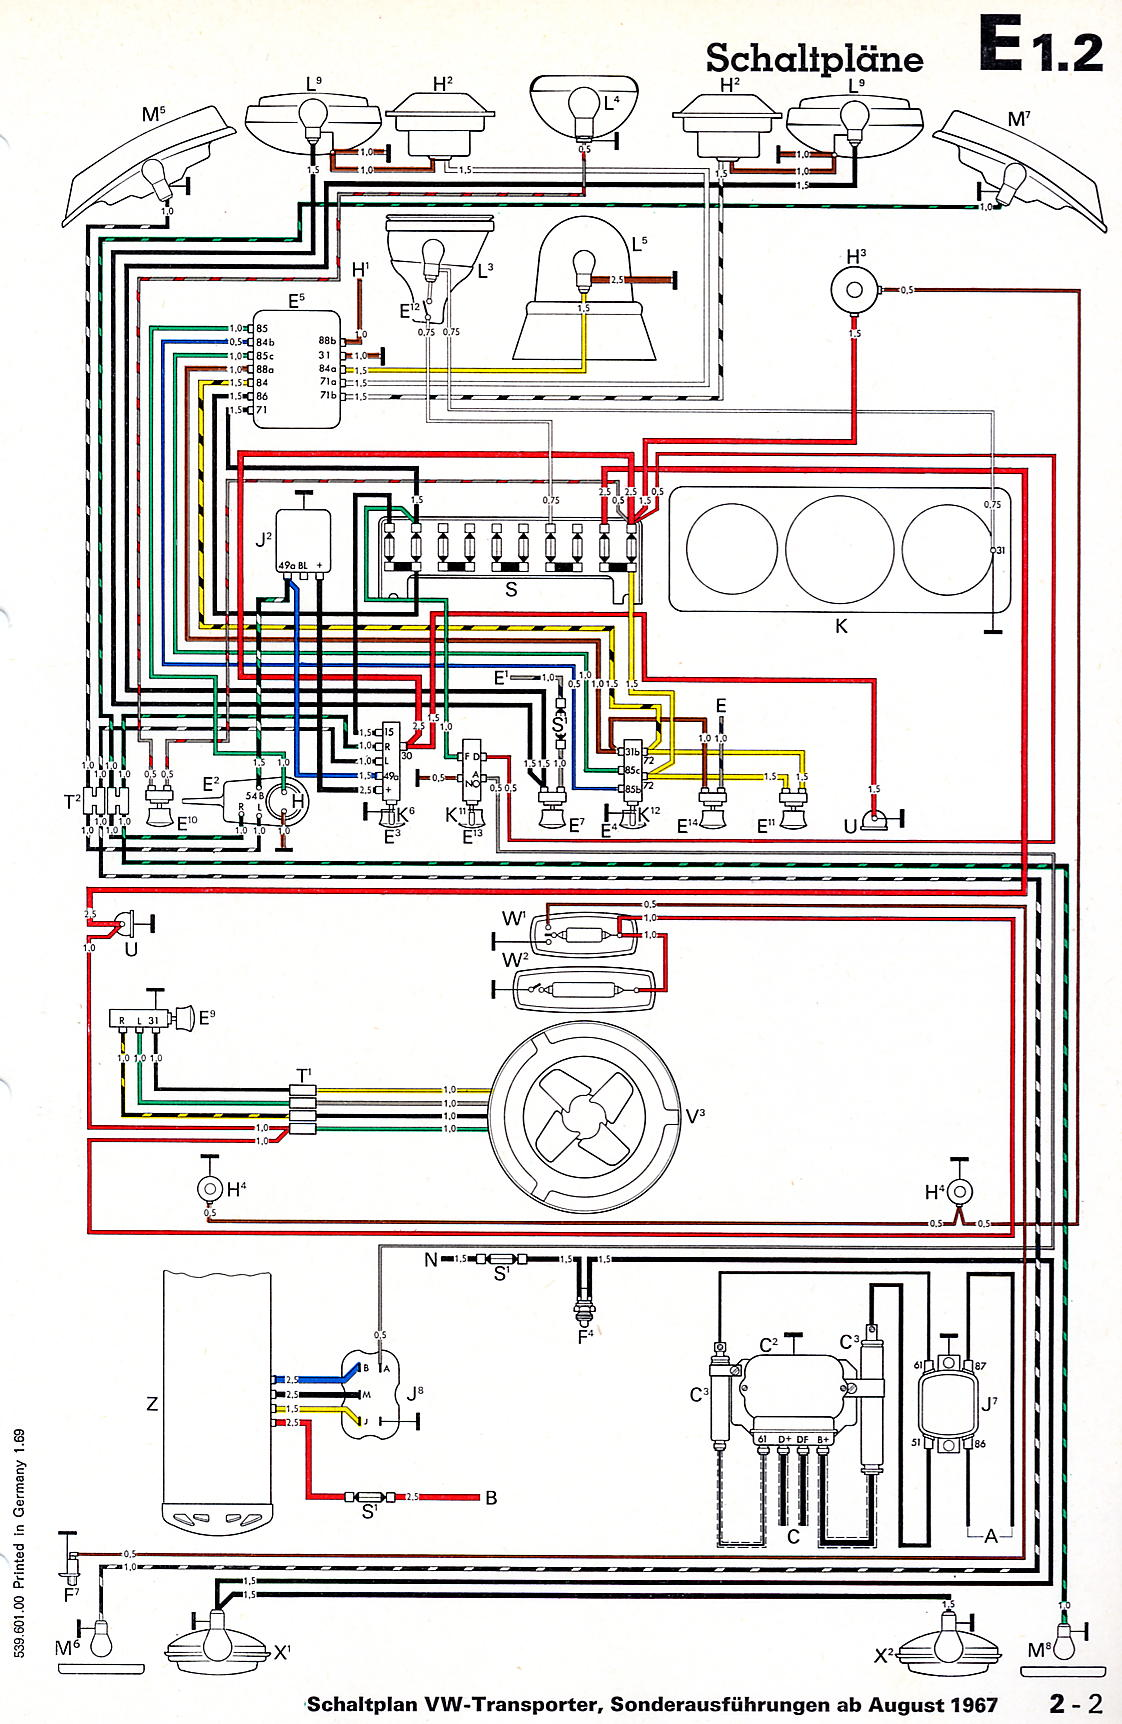 Transporter_from_August_1967_aditional_items vintagebus com vw bus (and other) wiring diagrams 67 VW Beetle Wiring Diagram at bayanpartner.co